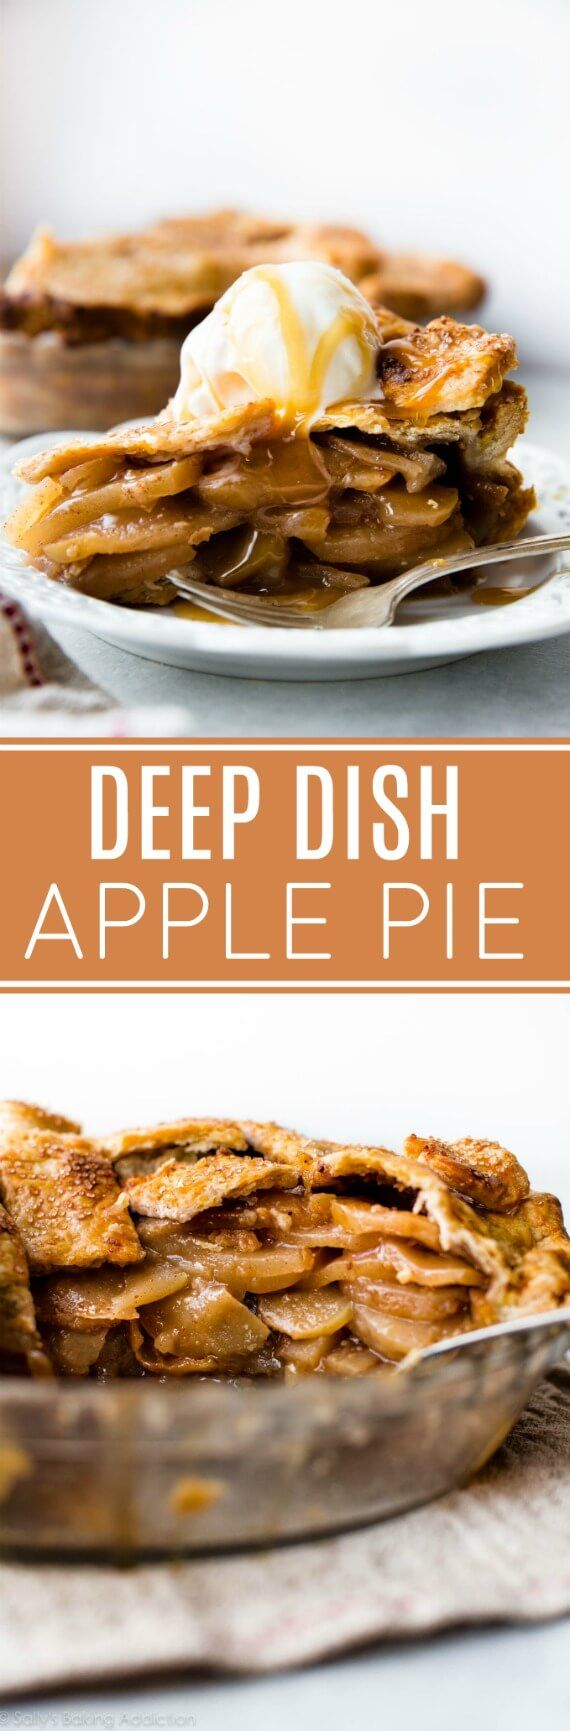 Deep dish apple pie with layers and layers of delicious apple slices and buttery flaky pie crust! Recipe on sallysbakingaddiction.com